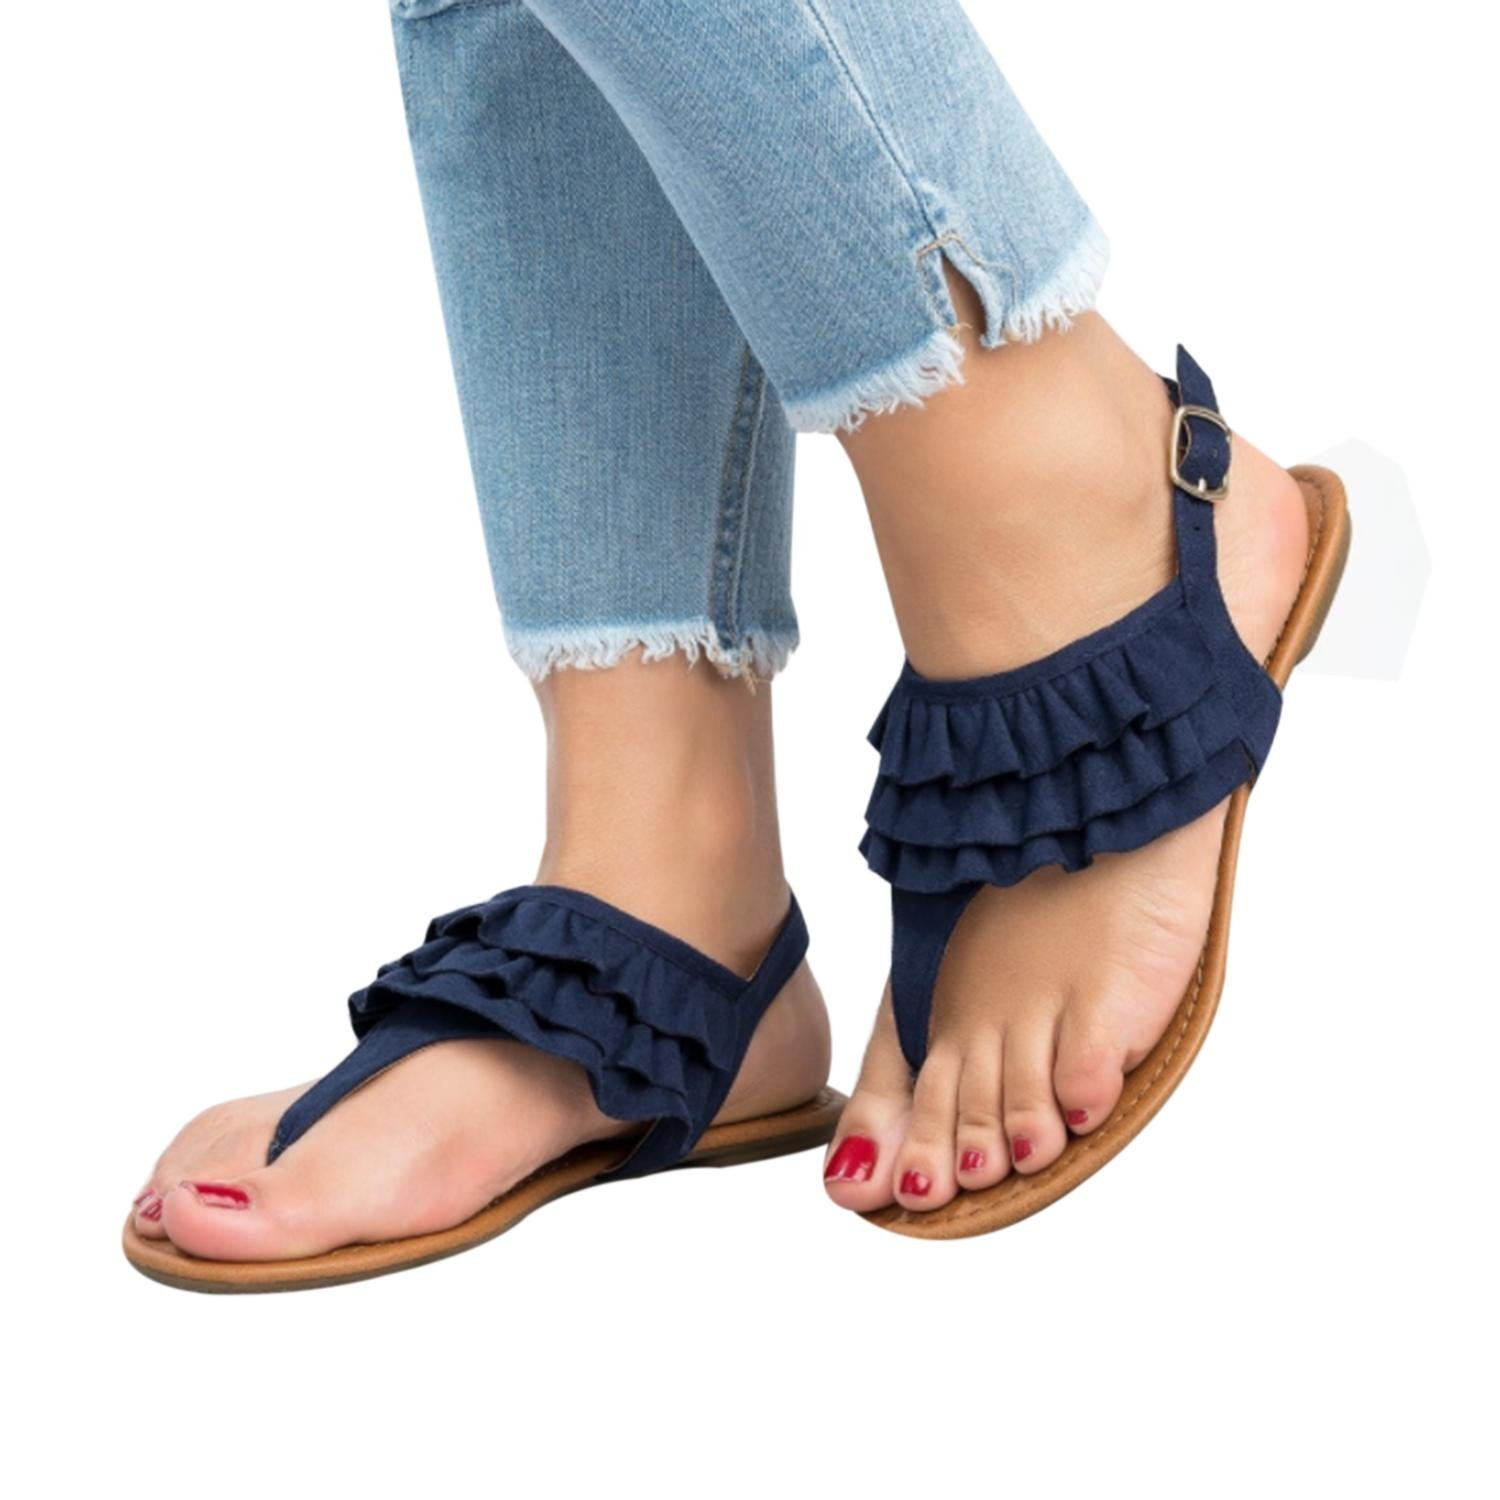 17e29a08b0b Amazon.com  Dellytop Women Ankle Strap Ruffle Thong Sandals Slingback Flip  Flops with Buckle  Shoes